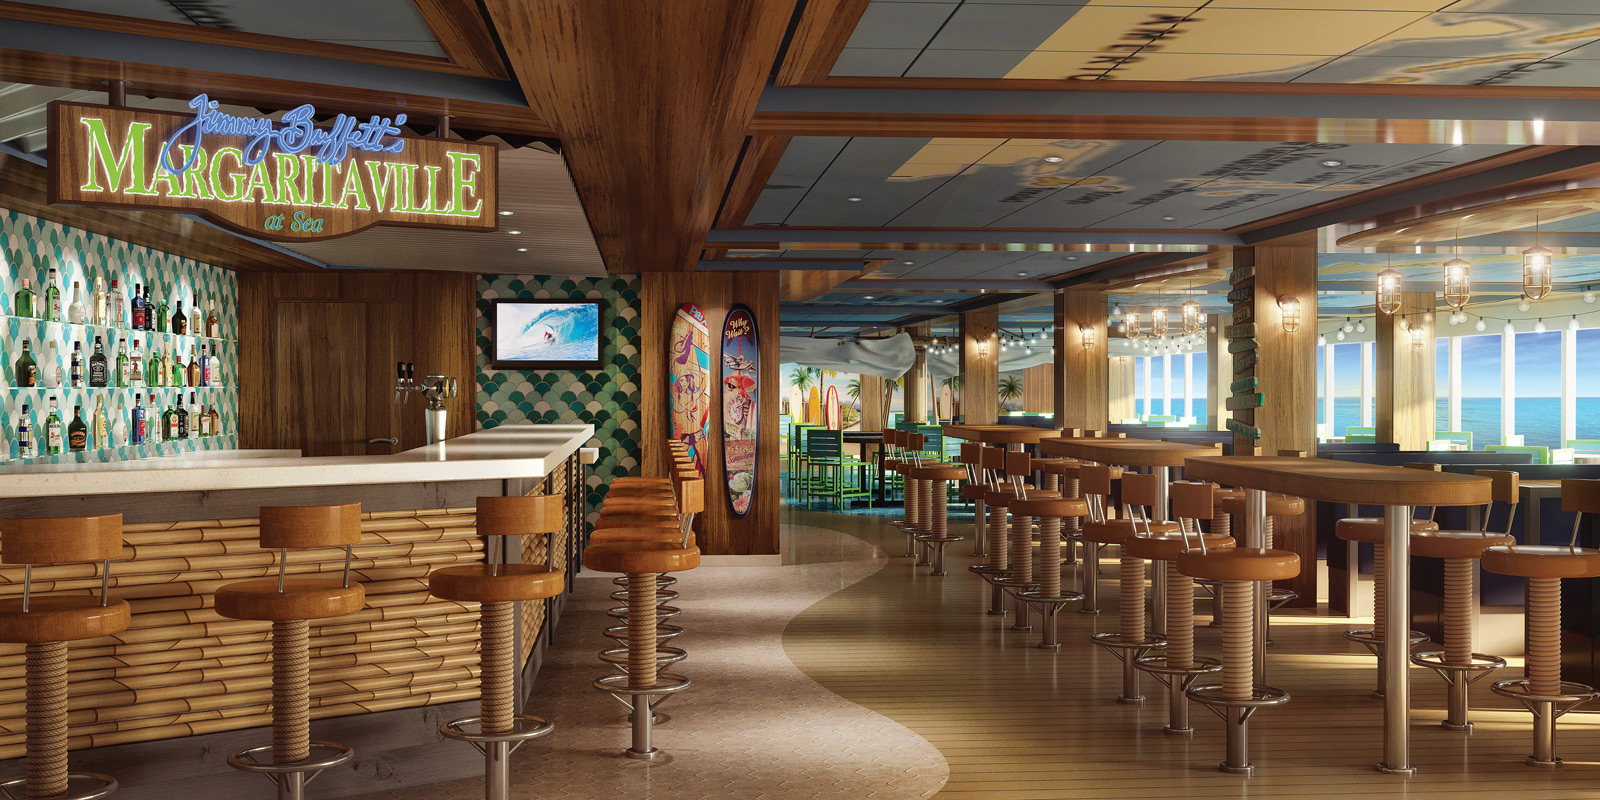 Norwegian Bliss - Margaritaville